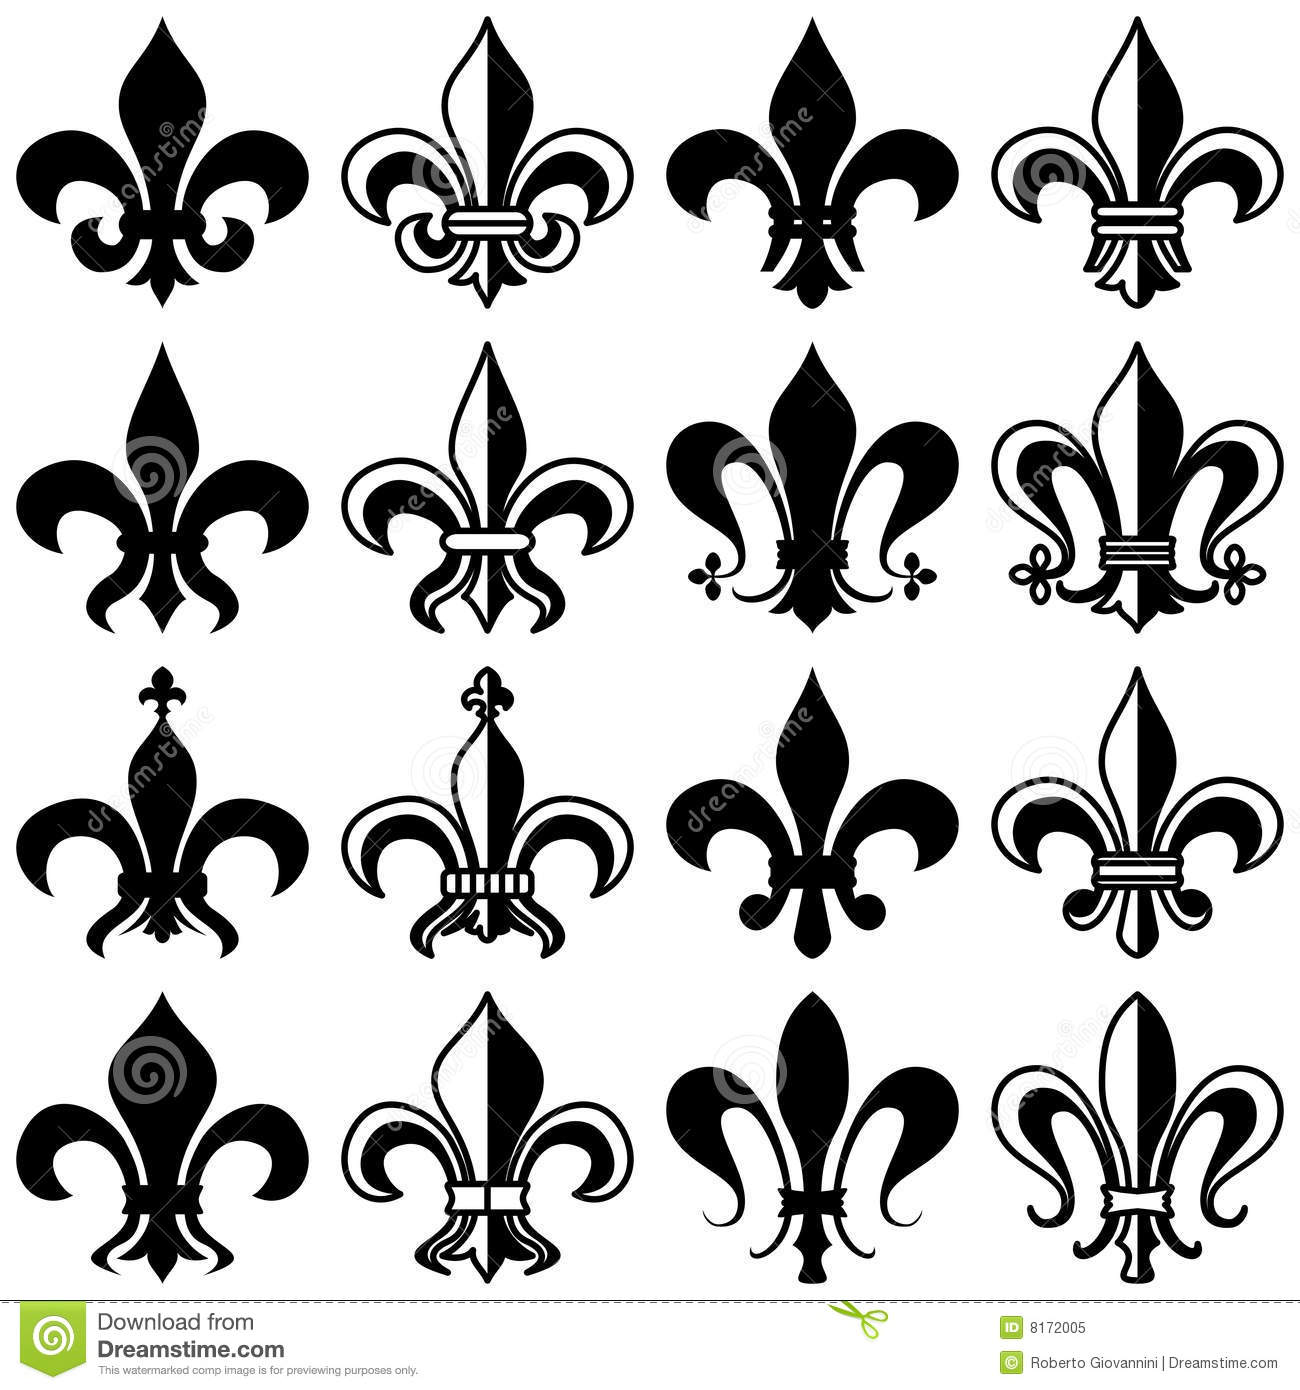 fleur de lys collection royalty free stock photo image. Black Bedroom Furniture Sets. Home Design Ideas